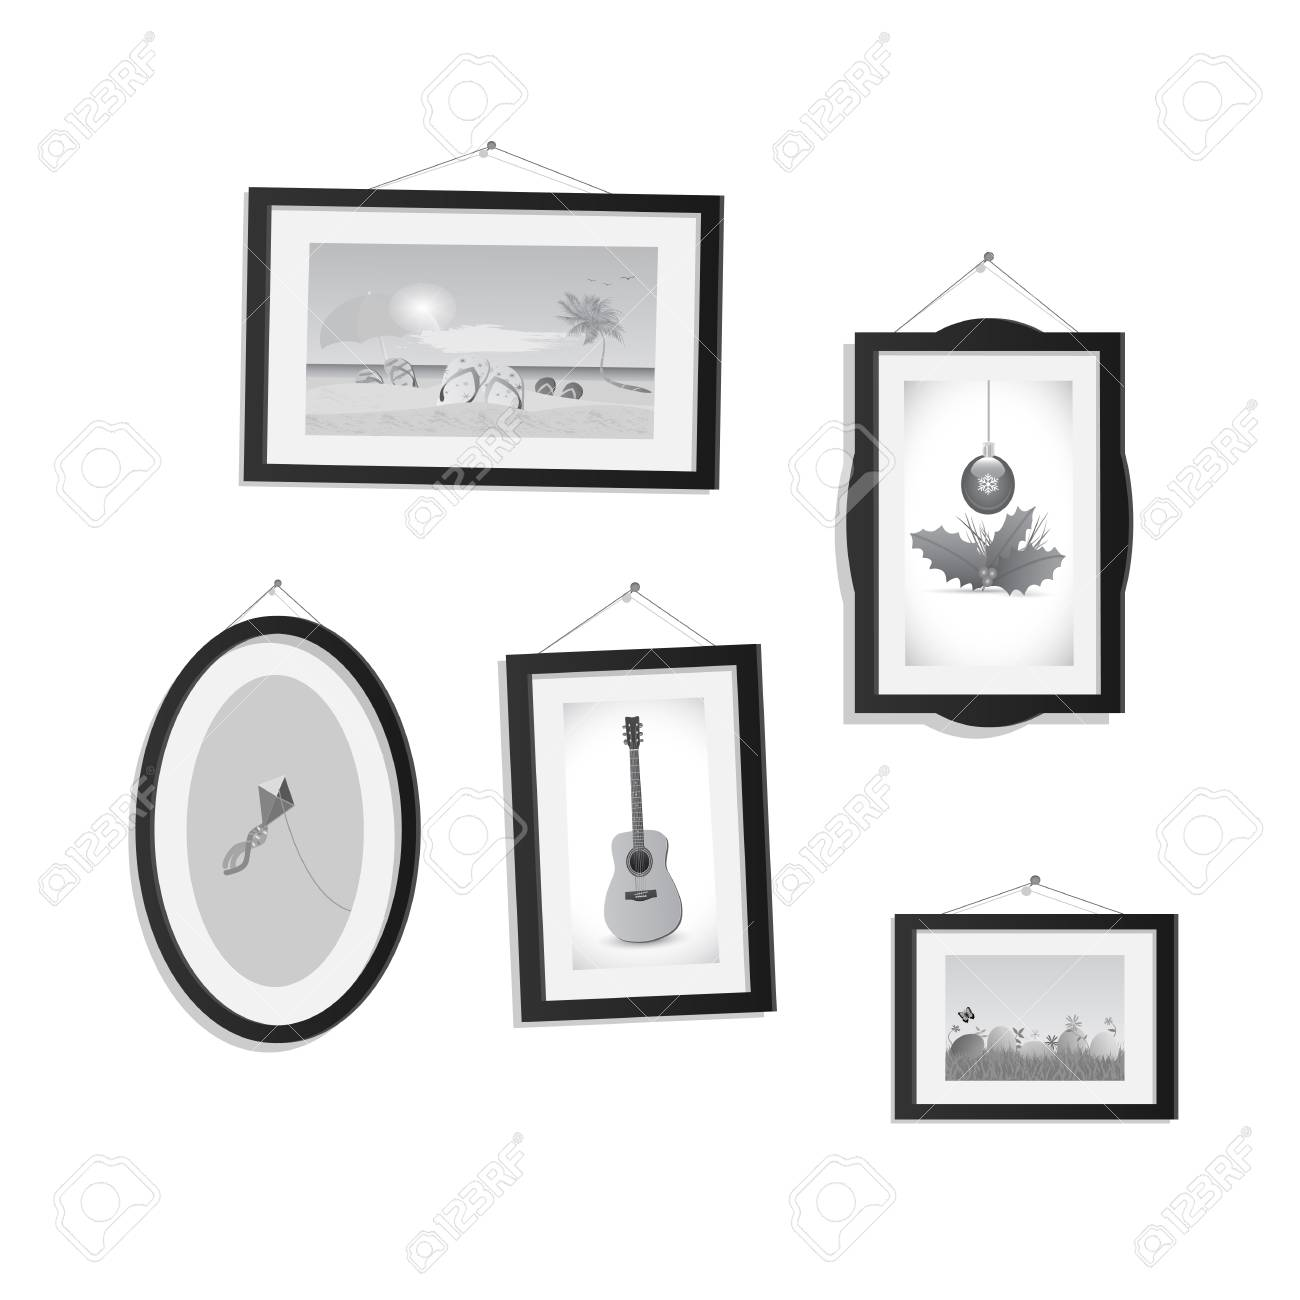 Illustration of hanging frames with pictures isolated on a white background. - 97016399